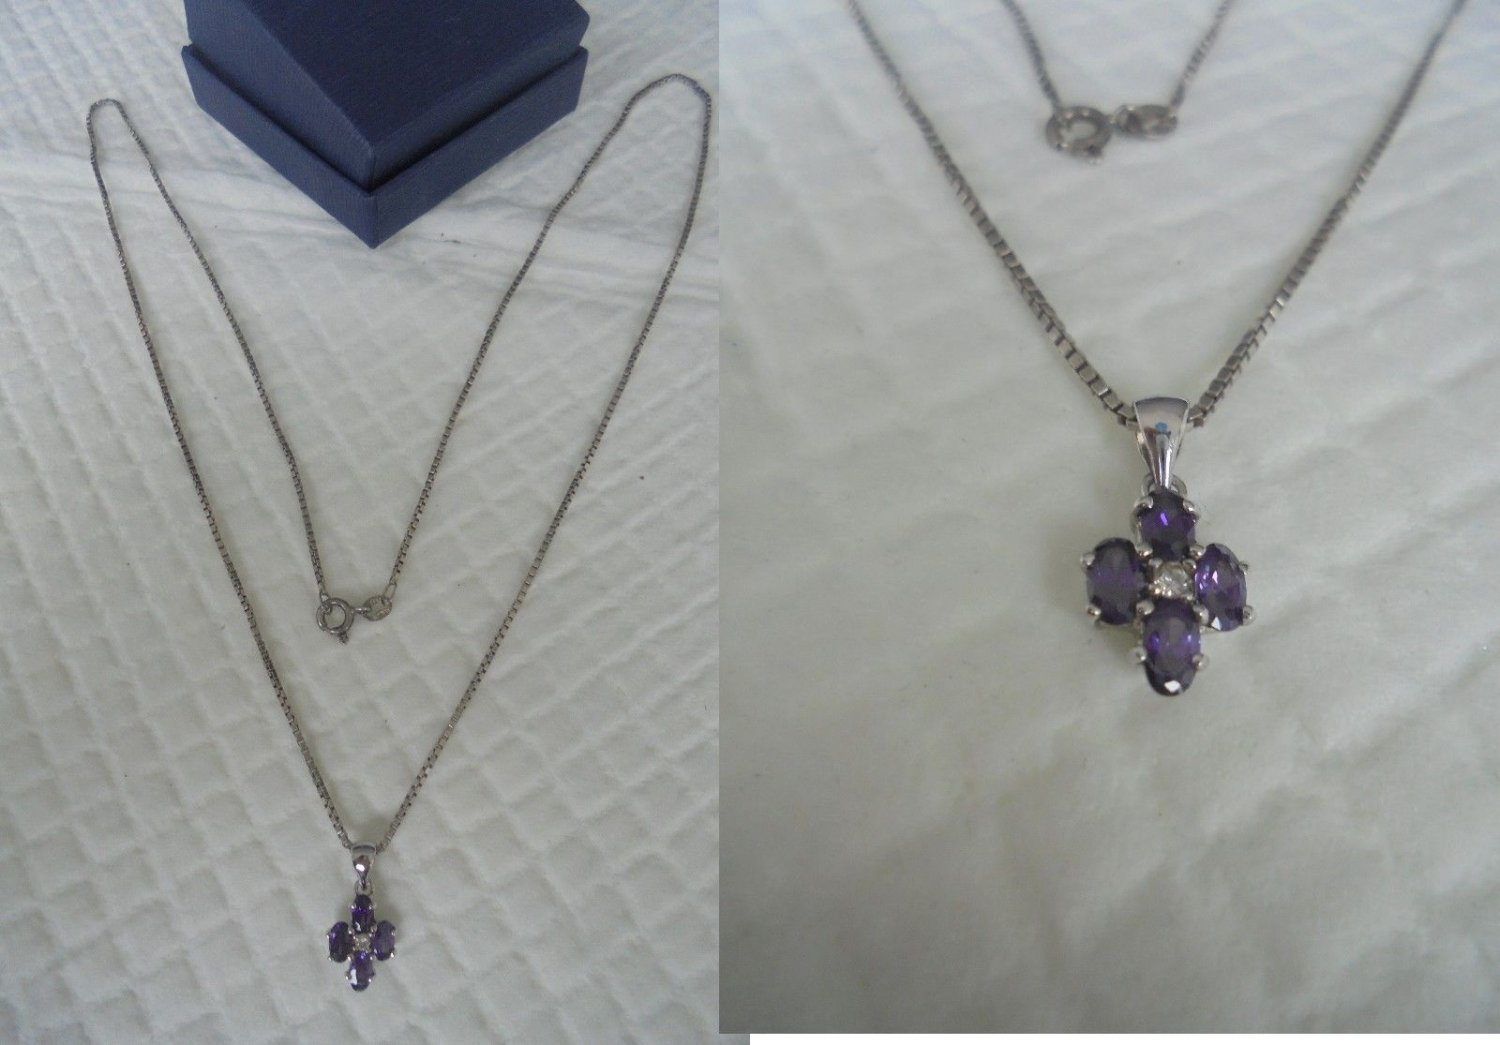 NECKLACE in STERLING SILVER 925 and pendent cross with 4 amethyst stones Original in gift box